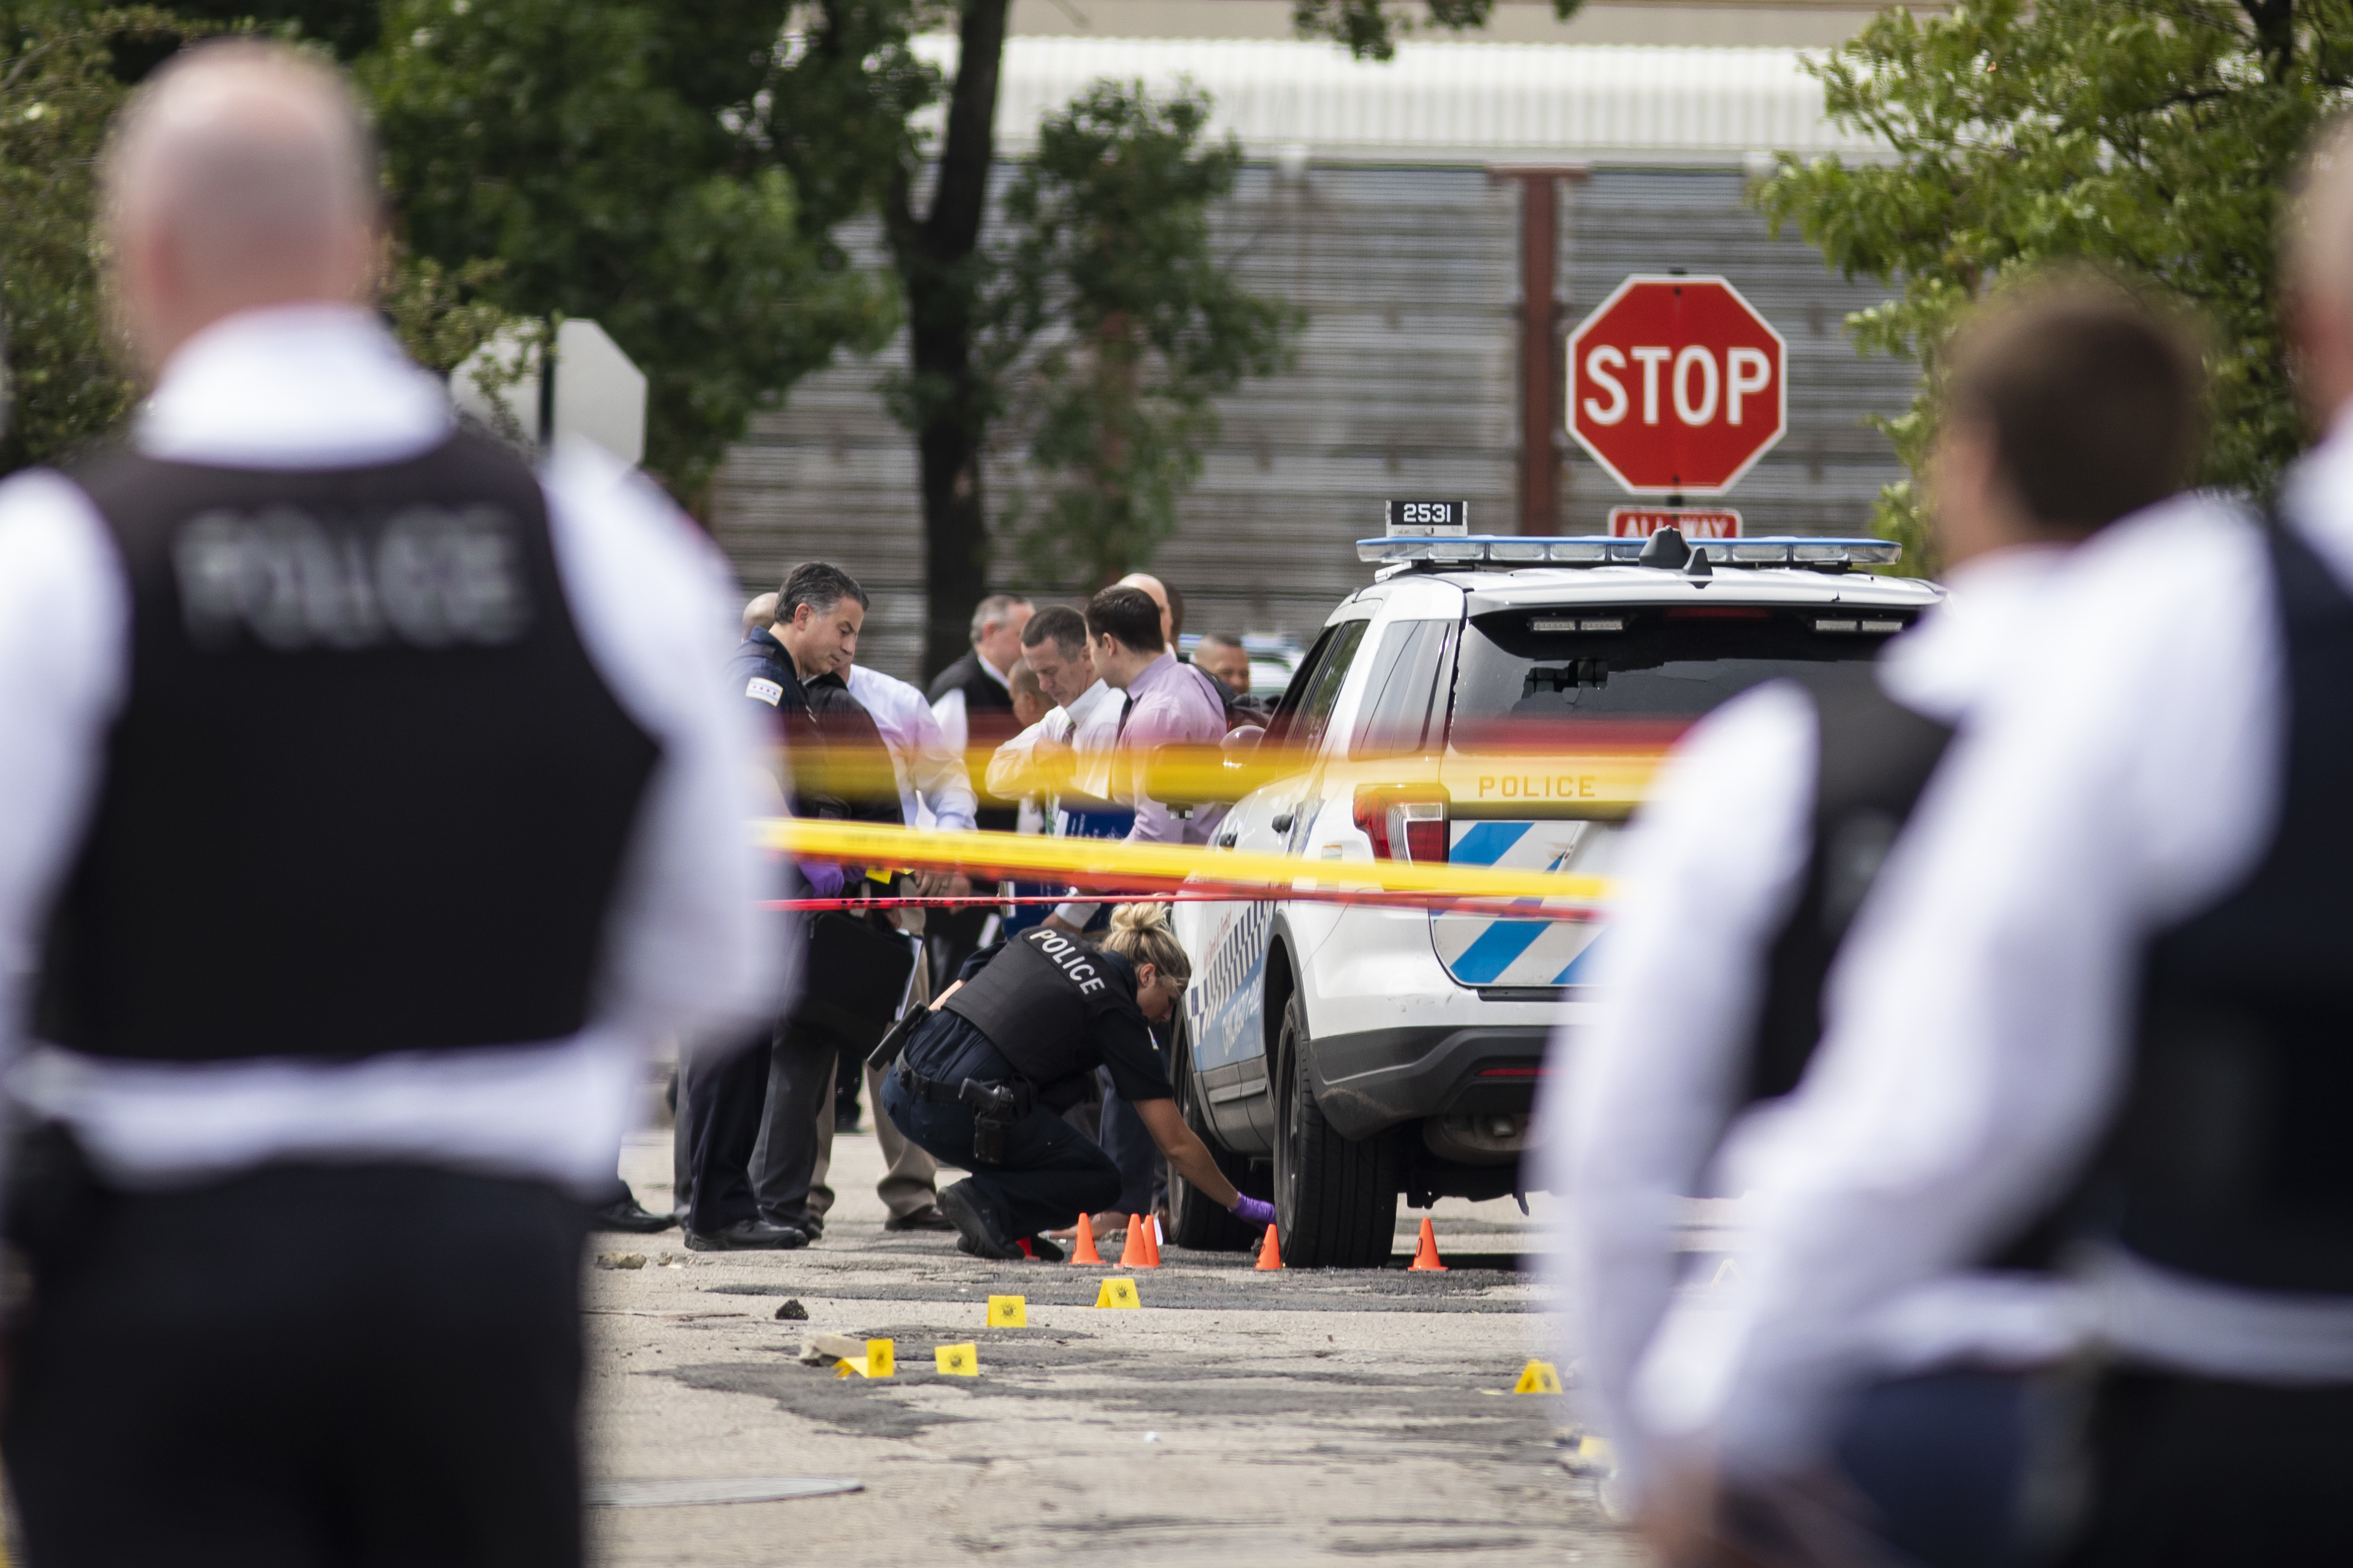 Chicago Police investigate at the 25th District station, 5555 W. Grand Ave., on the Northwest Side, after multiple officers were shot outside the station Thursday morning. The suspect was also shot multiple times in the incident.